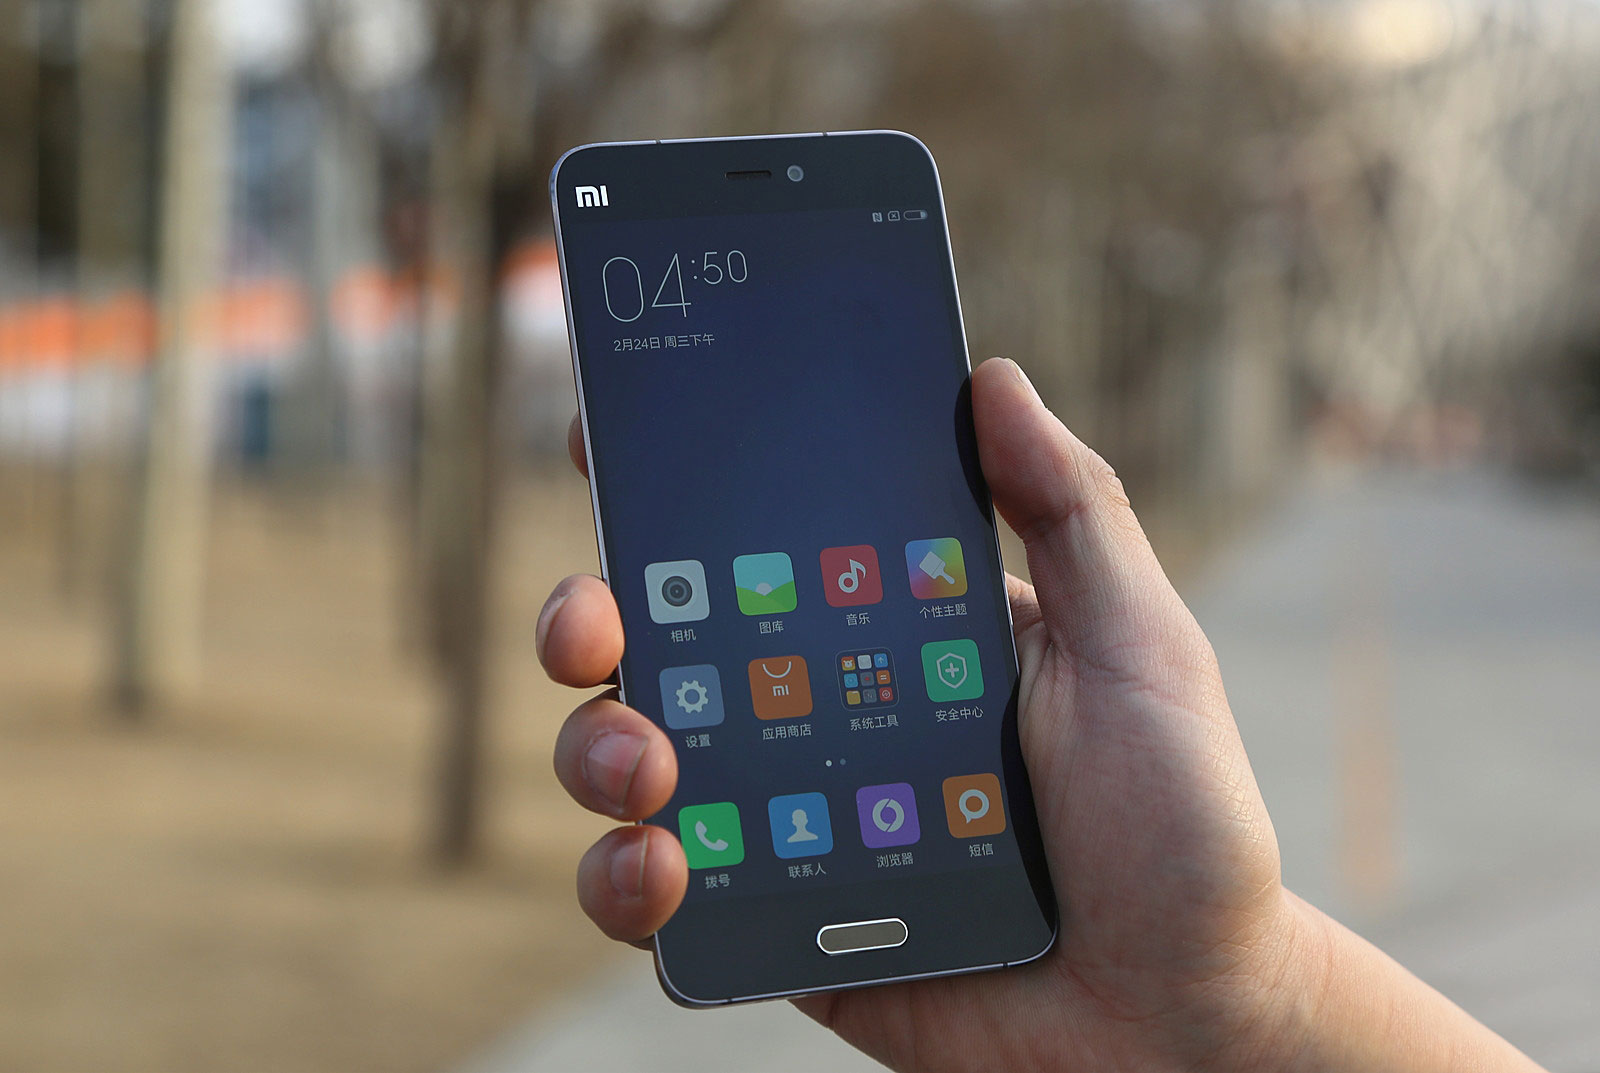 Xiaomi Mi 5 held in hand, checking out the display of the device